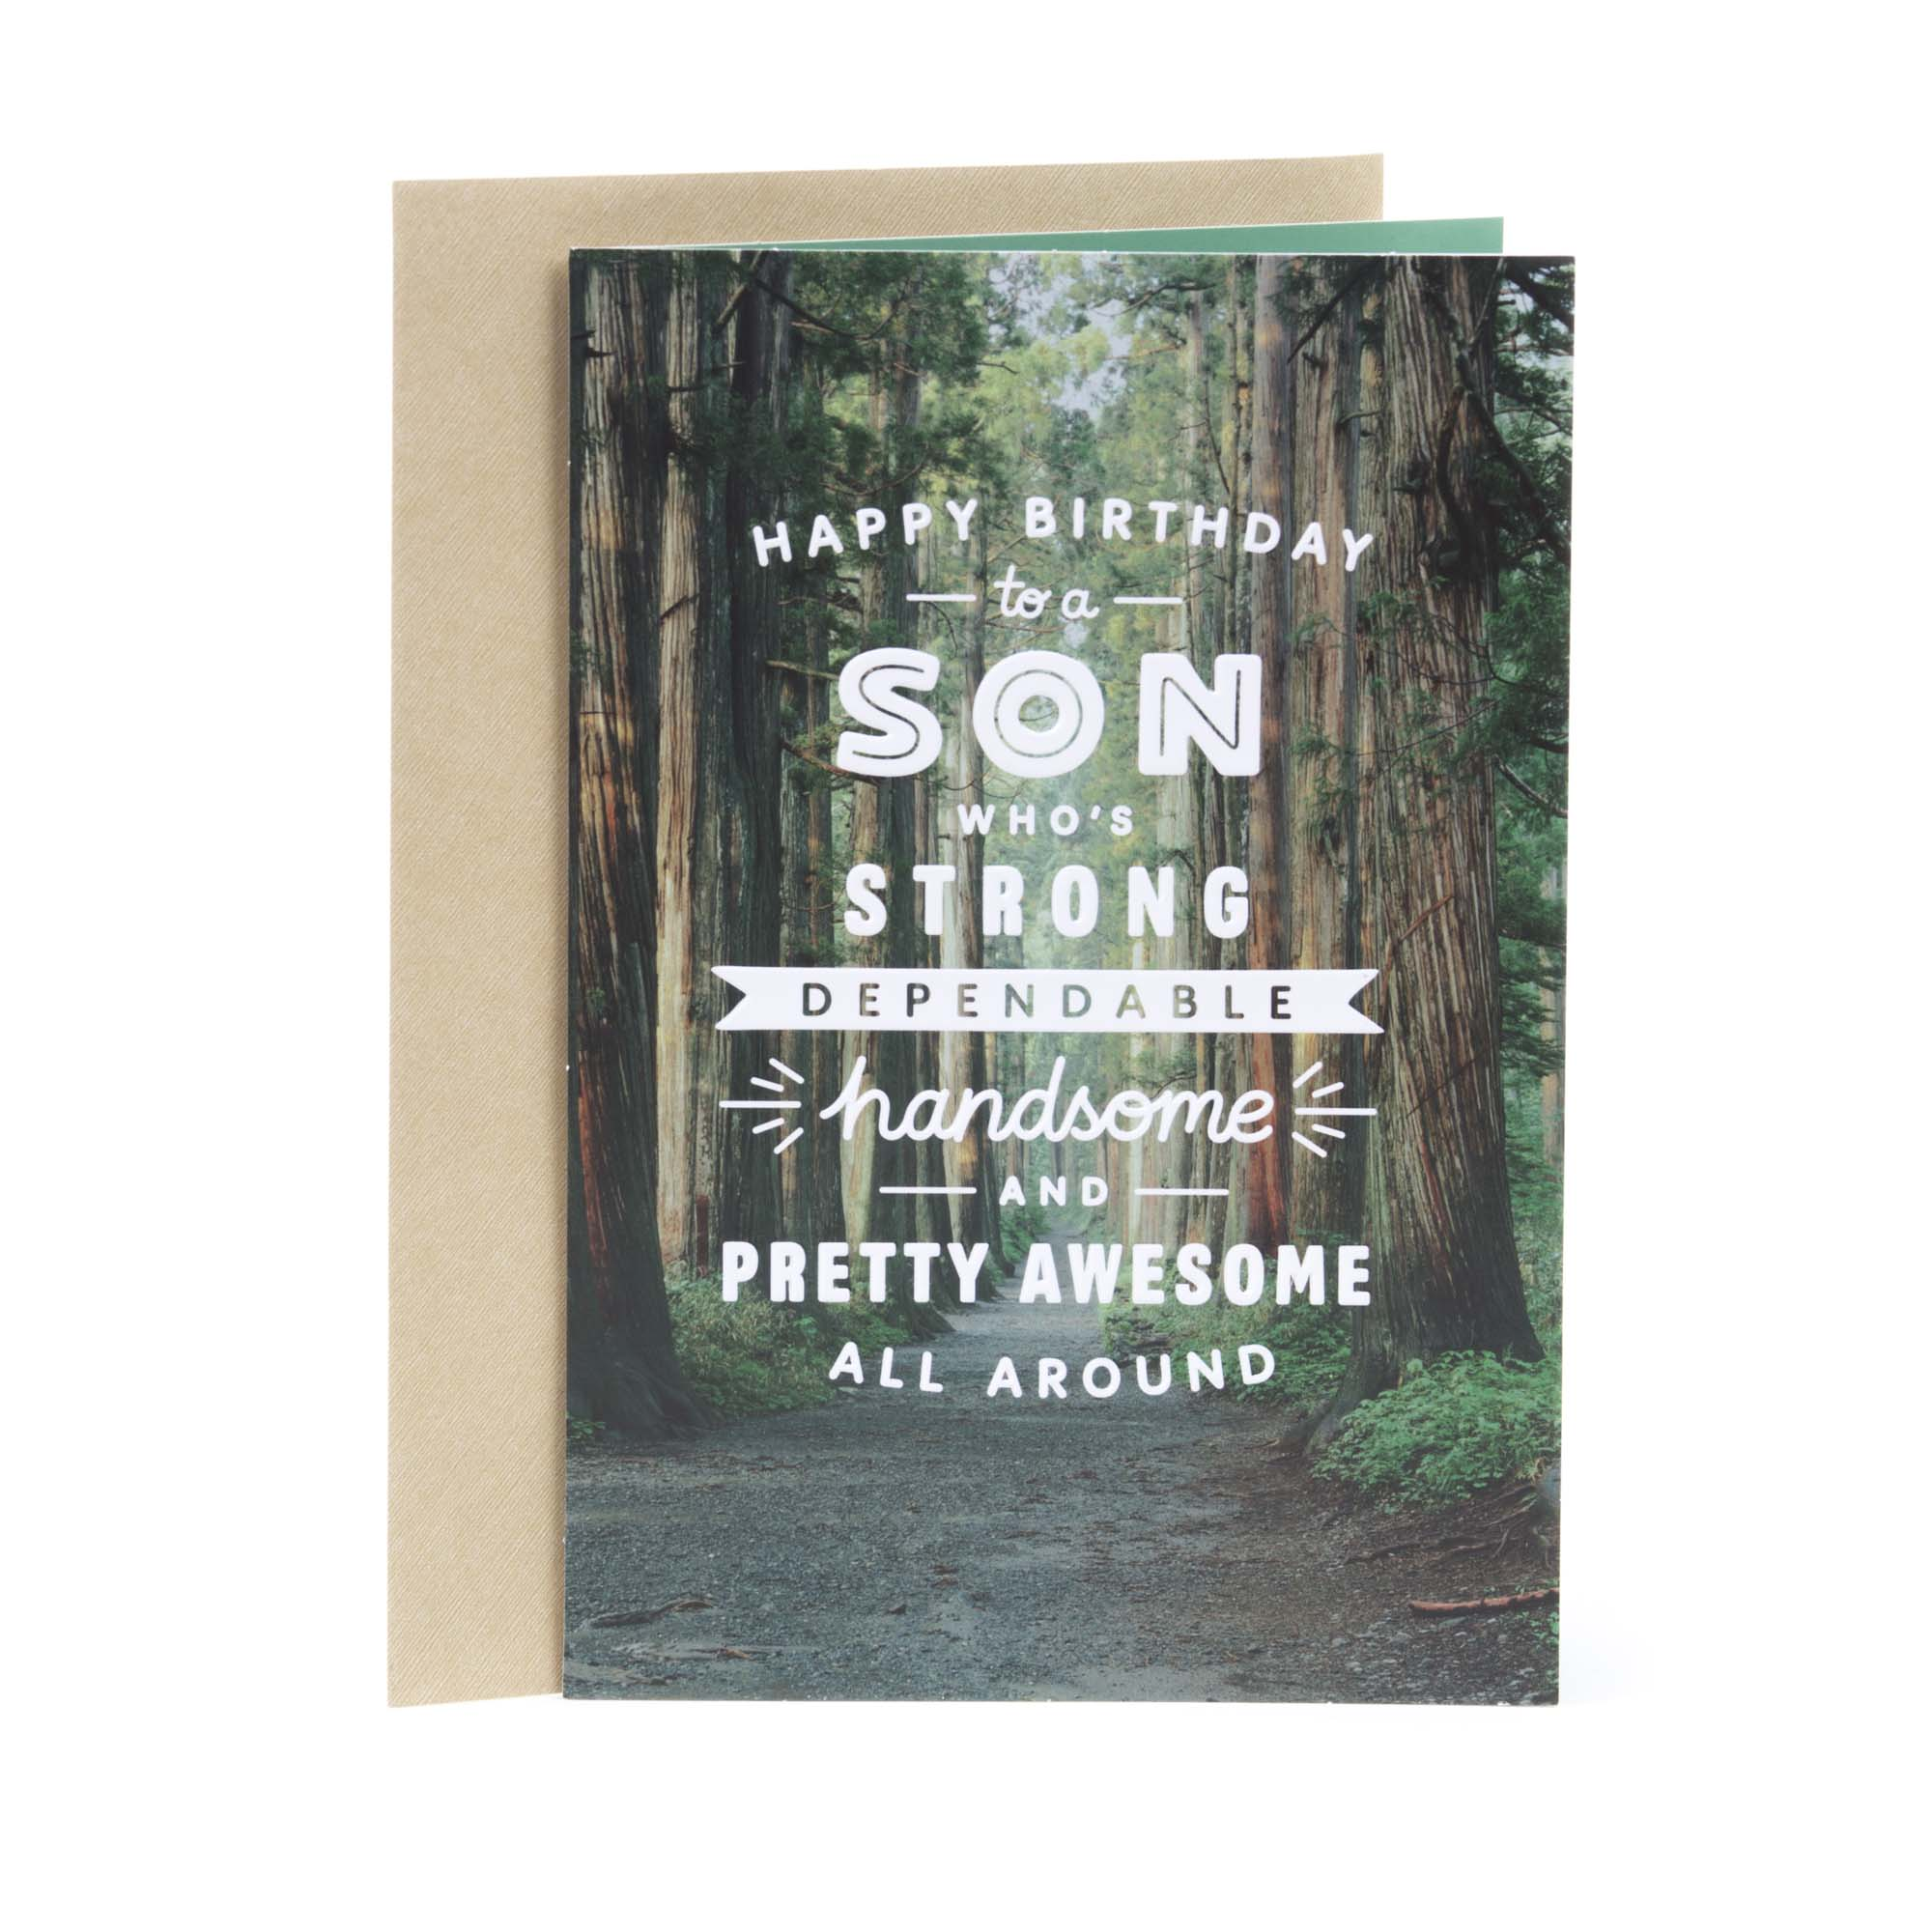 Hallmark, Woodland Trail, Birthday Greeting Card, for Son